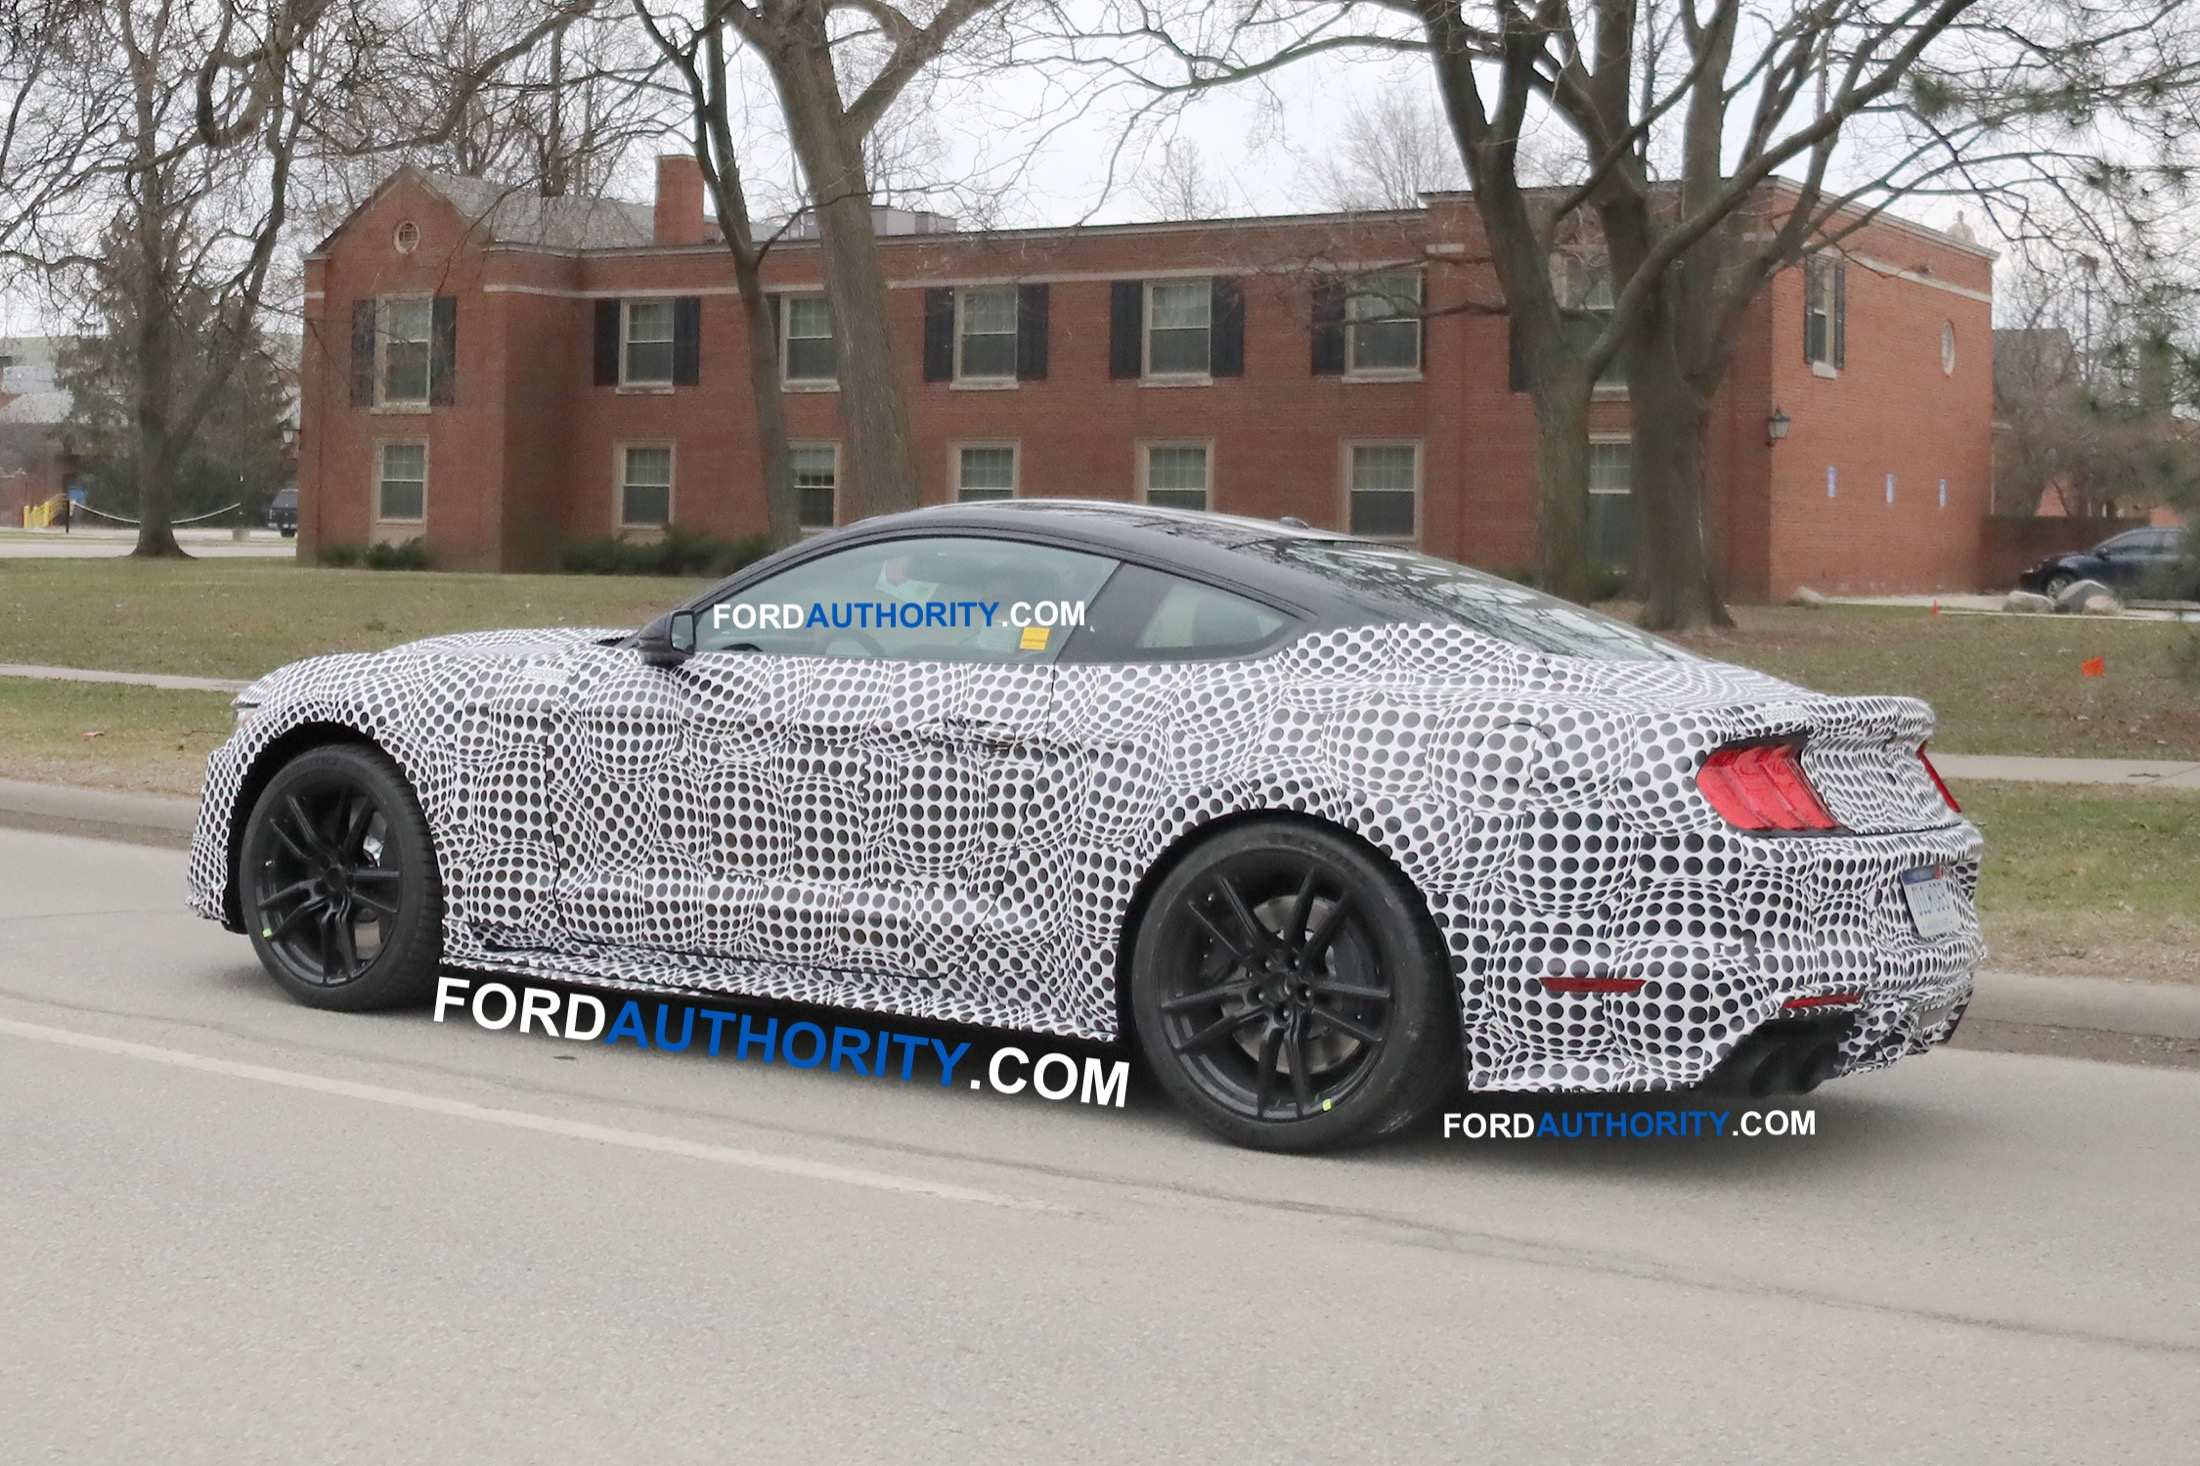 19 Concept of 2020 The Spy Shots Ford Mustang Svt Gt 500 Engine with 2020 The Spy Shots Ford Mustang Svt Gt 500